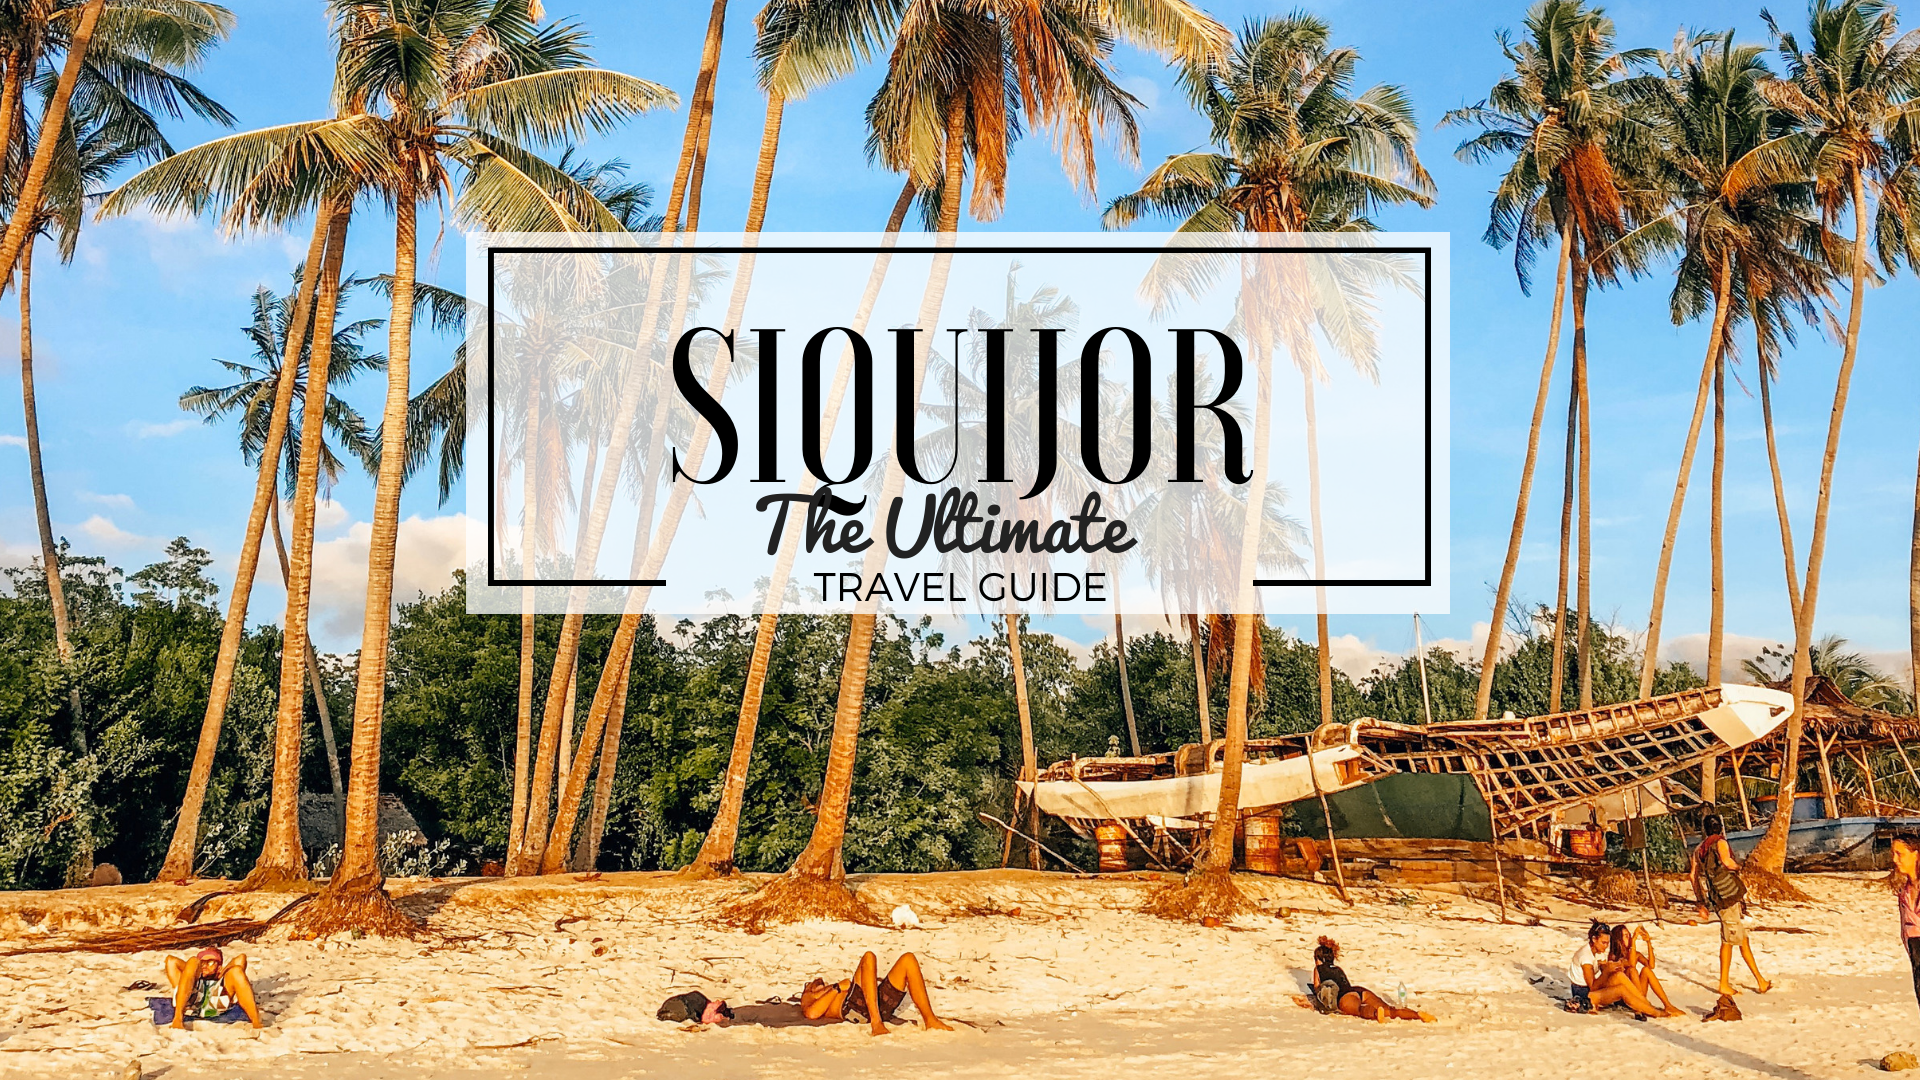 Siquijor The Ultimate Travel Guide